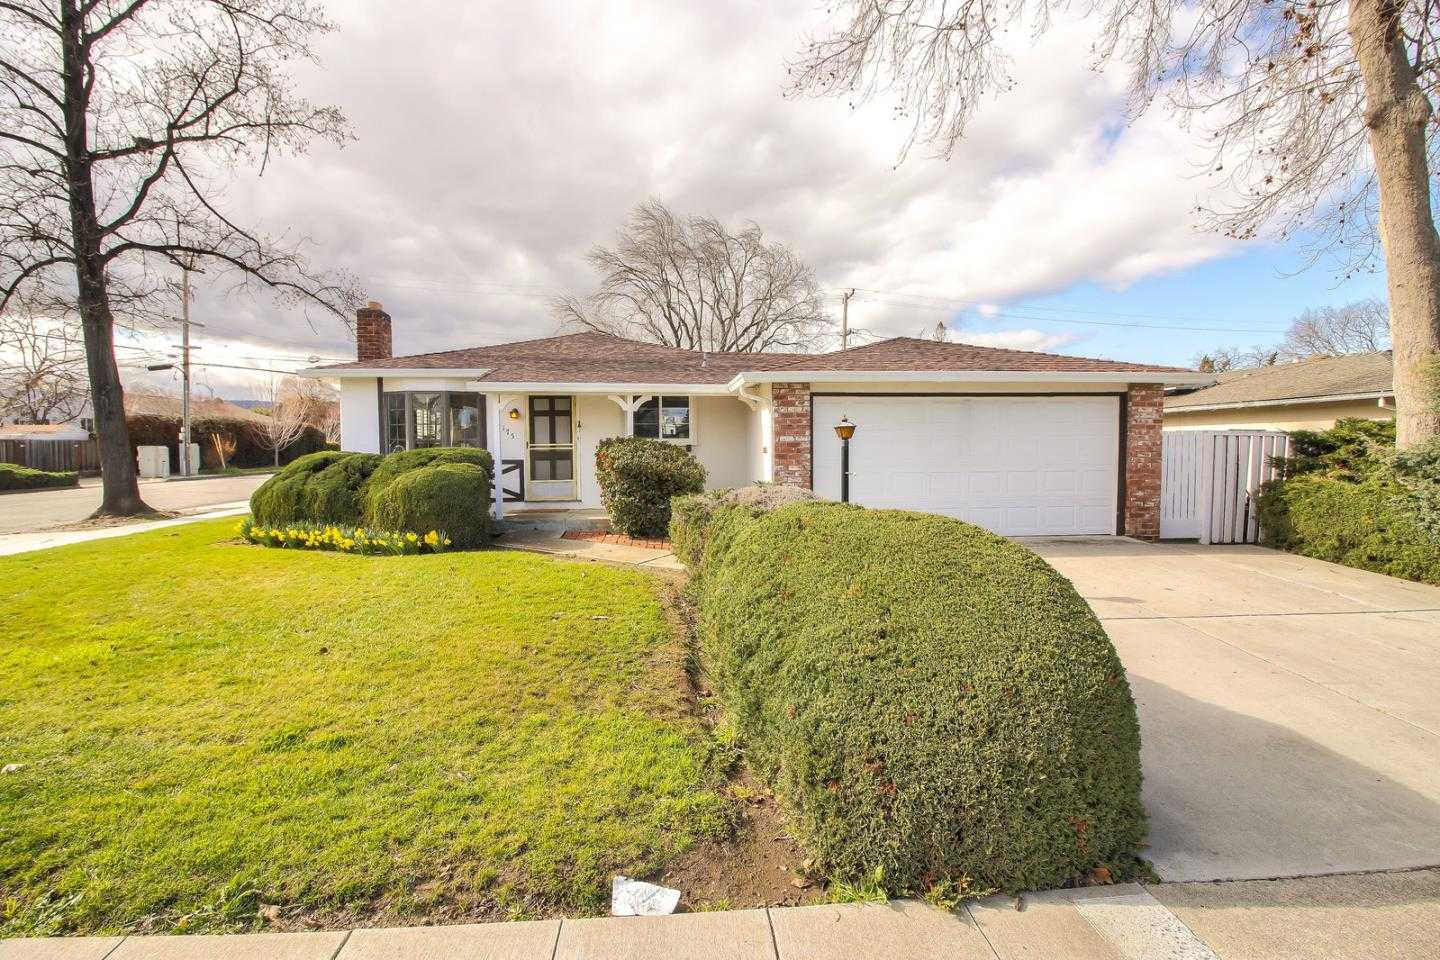 $1,895,000 - 3Br/2Ba -  for Sale in San Jose